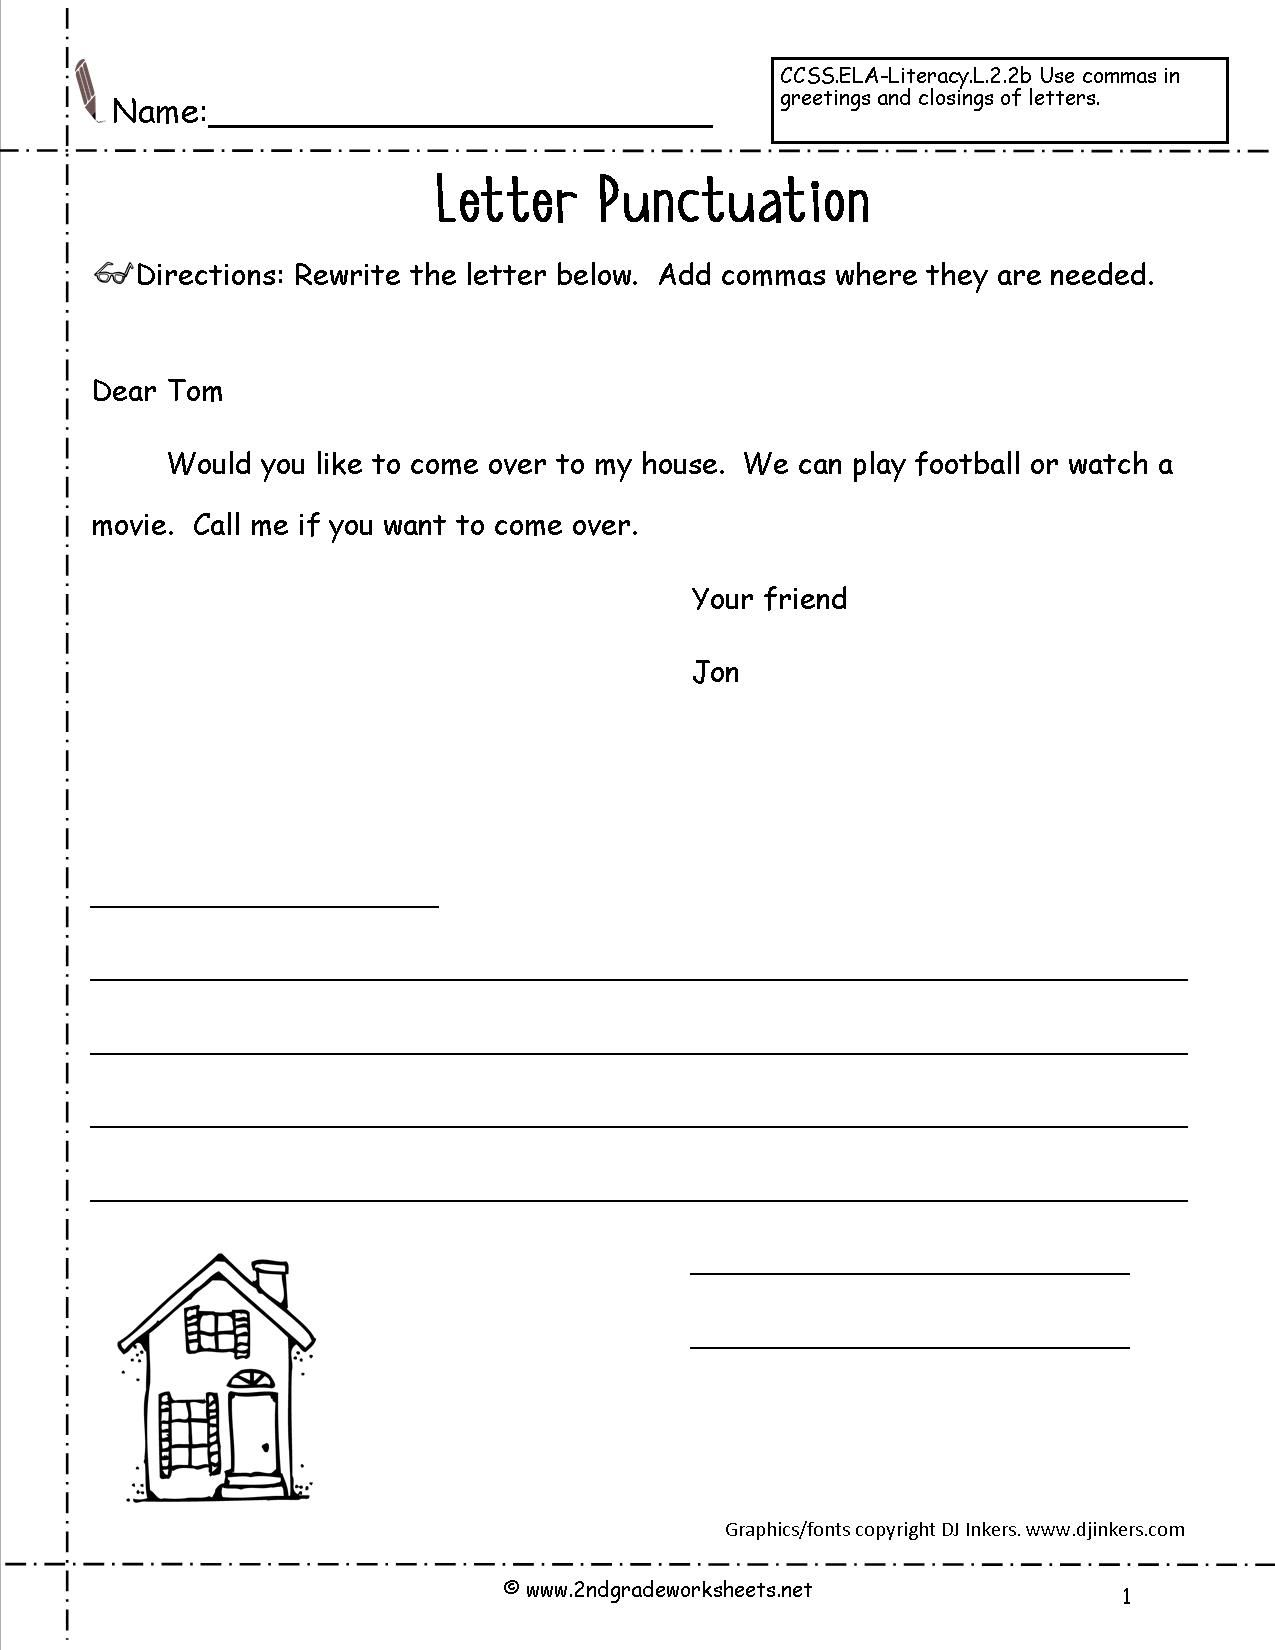 Letters And Parts Of A Letter Worksheet With Images Letter